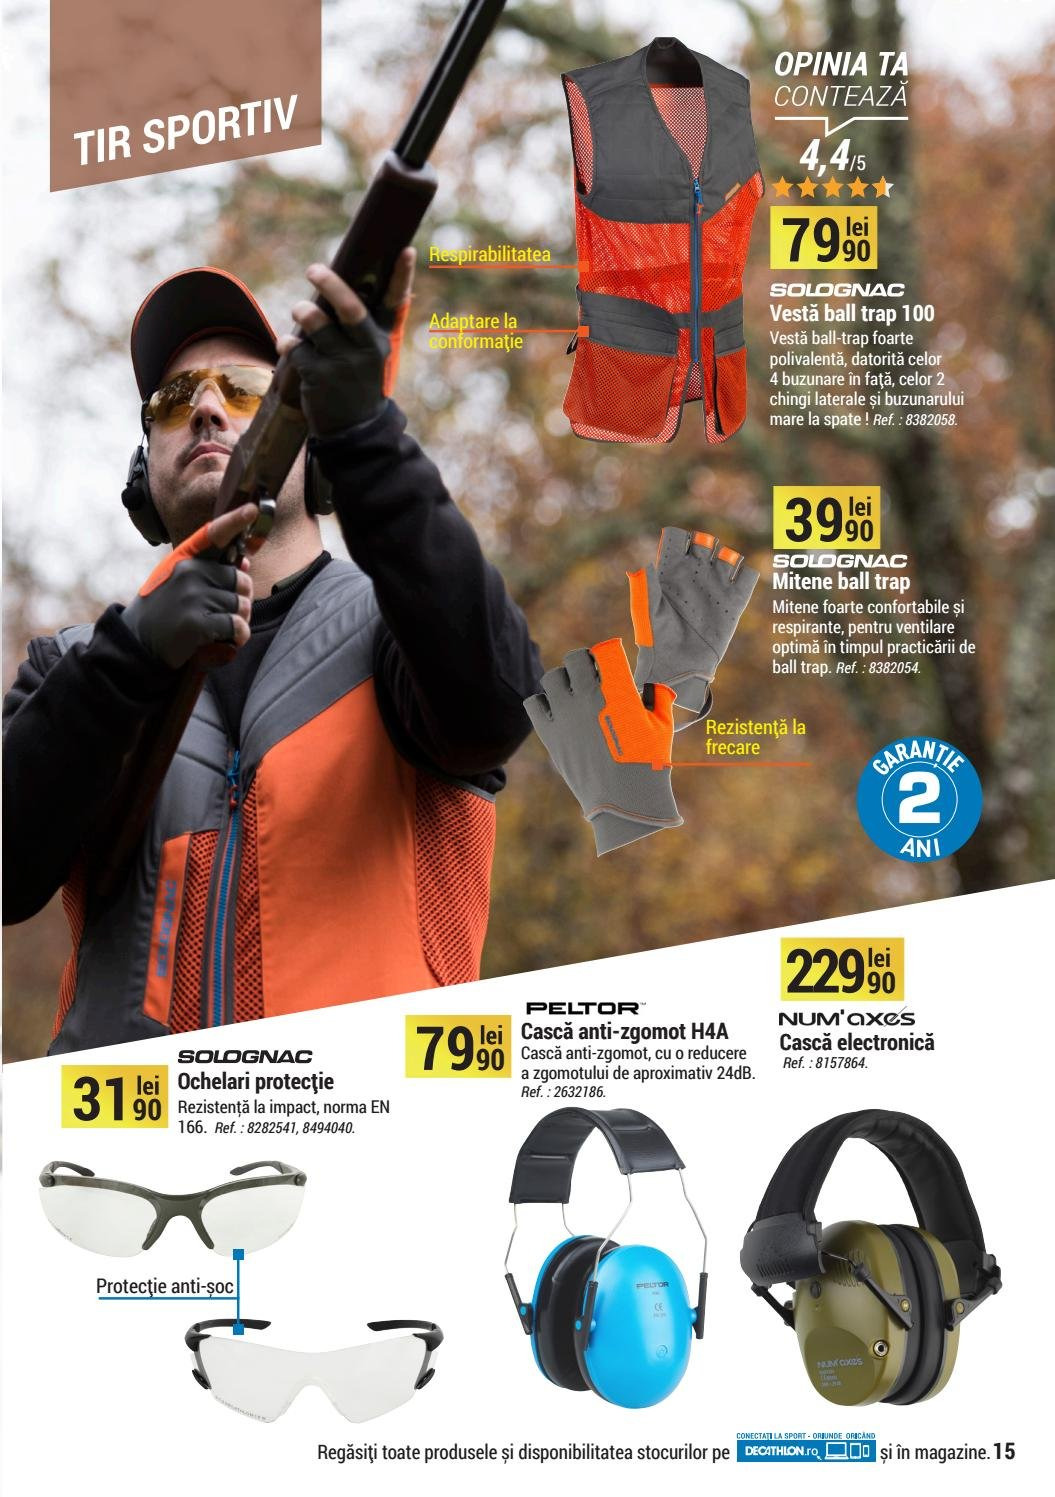 Cataloage Decathlon - 01.09.2018 - 31.12.2018. Pagina 15.